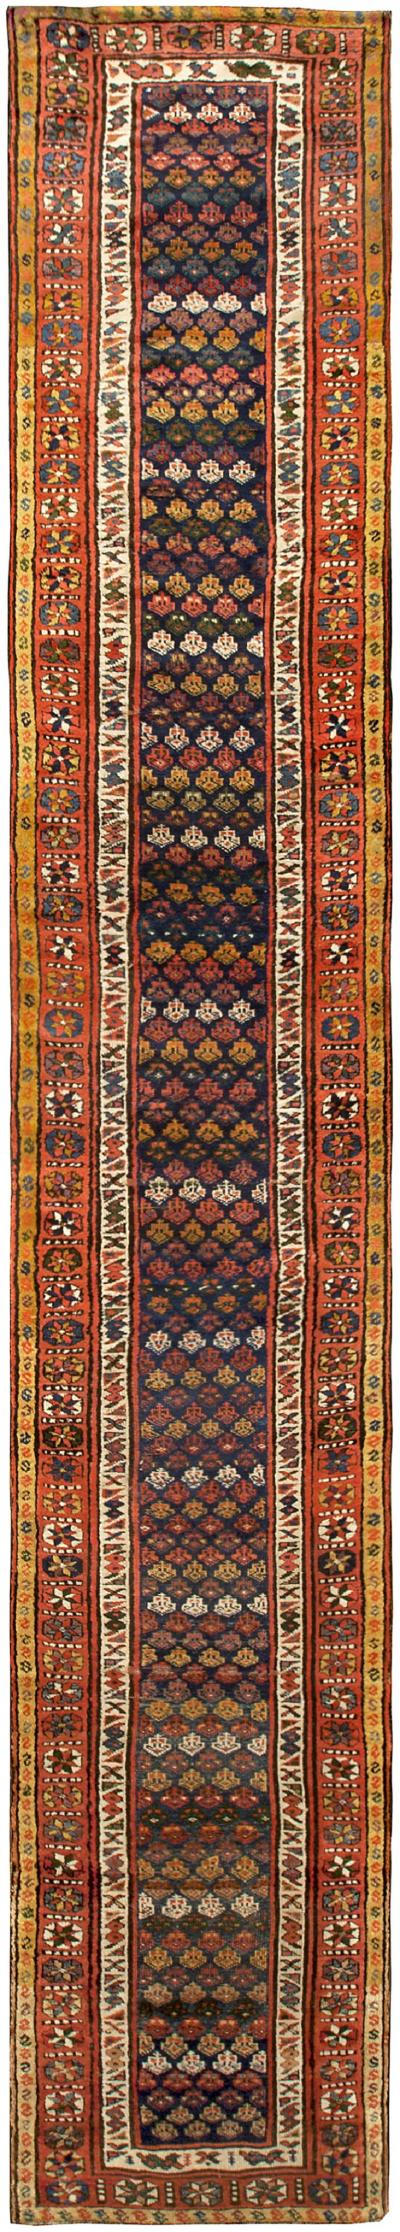 Antique North West Persian Runner